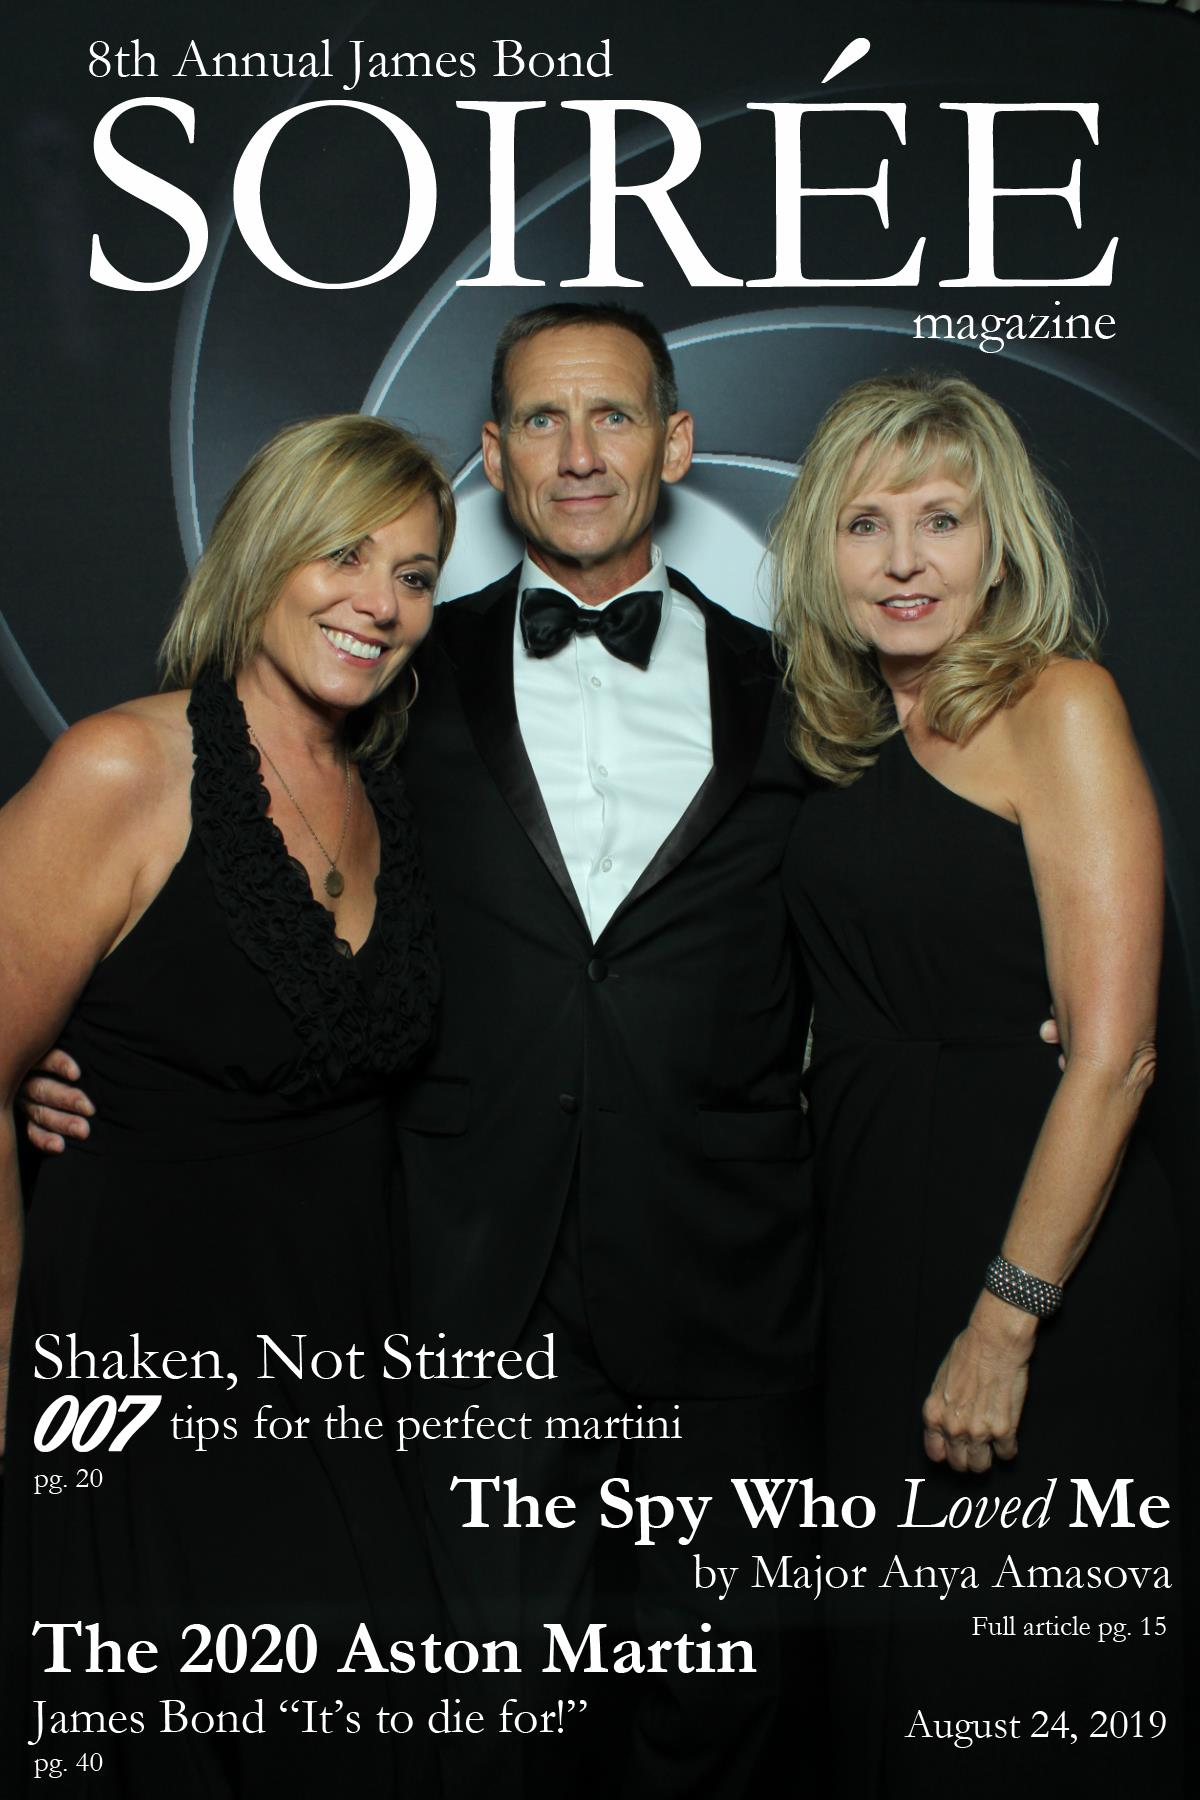 James Bond Soiree Magazine Cover, James Bond Look Alike, Bond Theme Night Pittsburgh